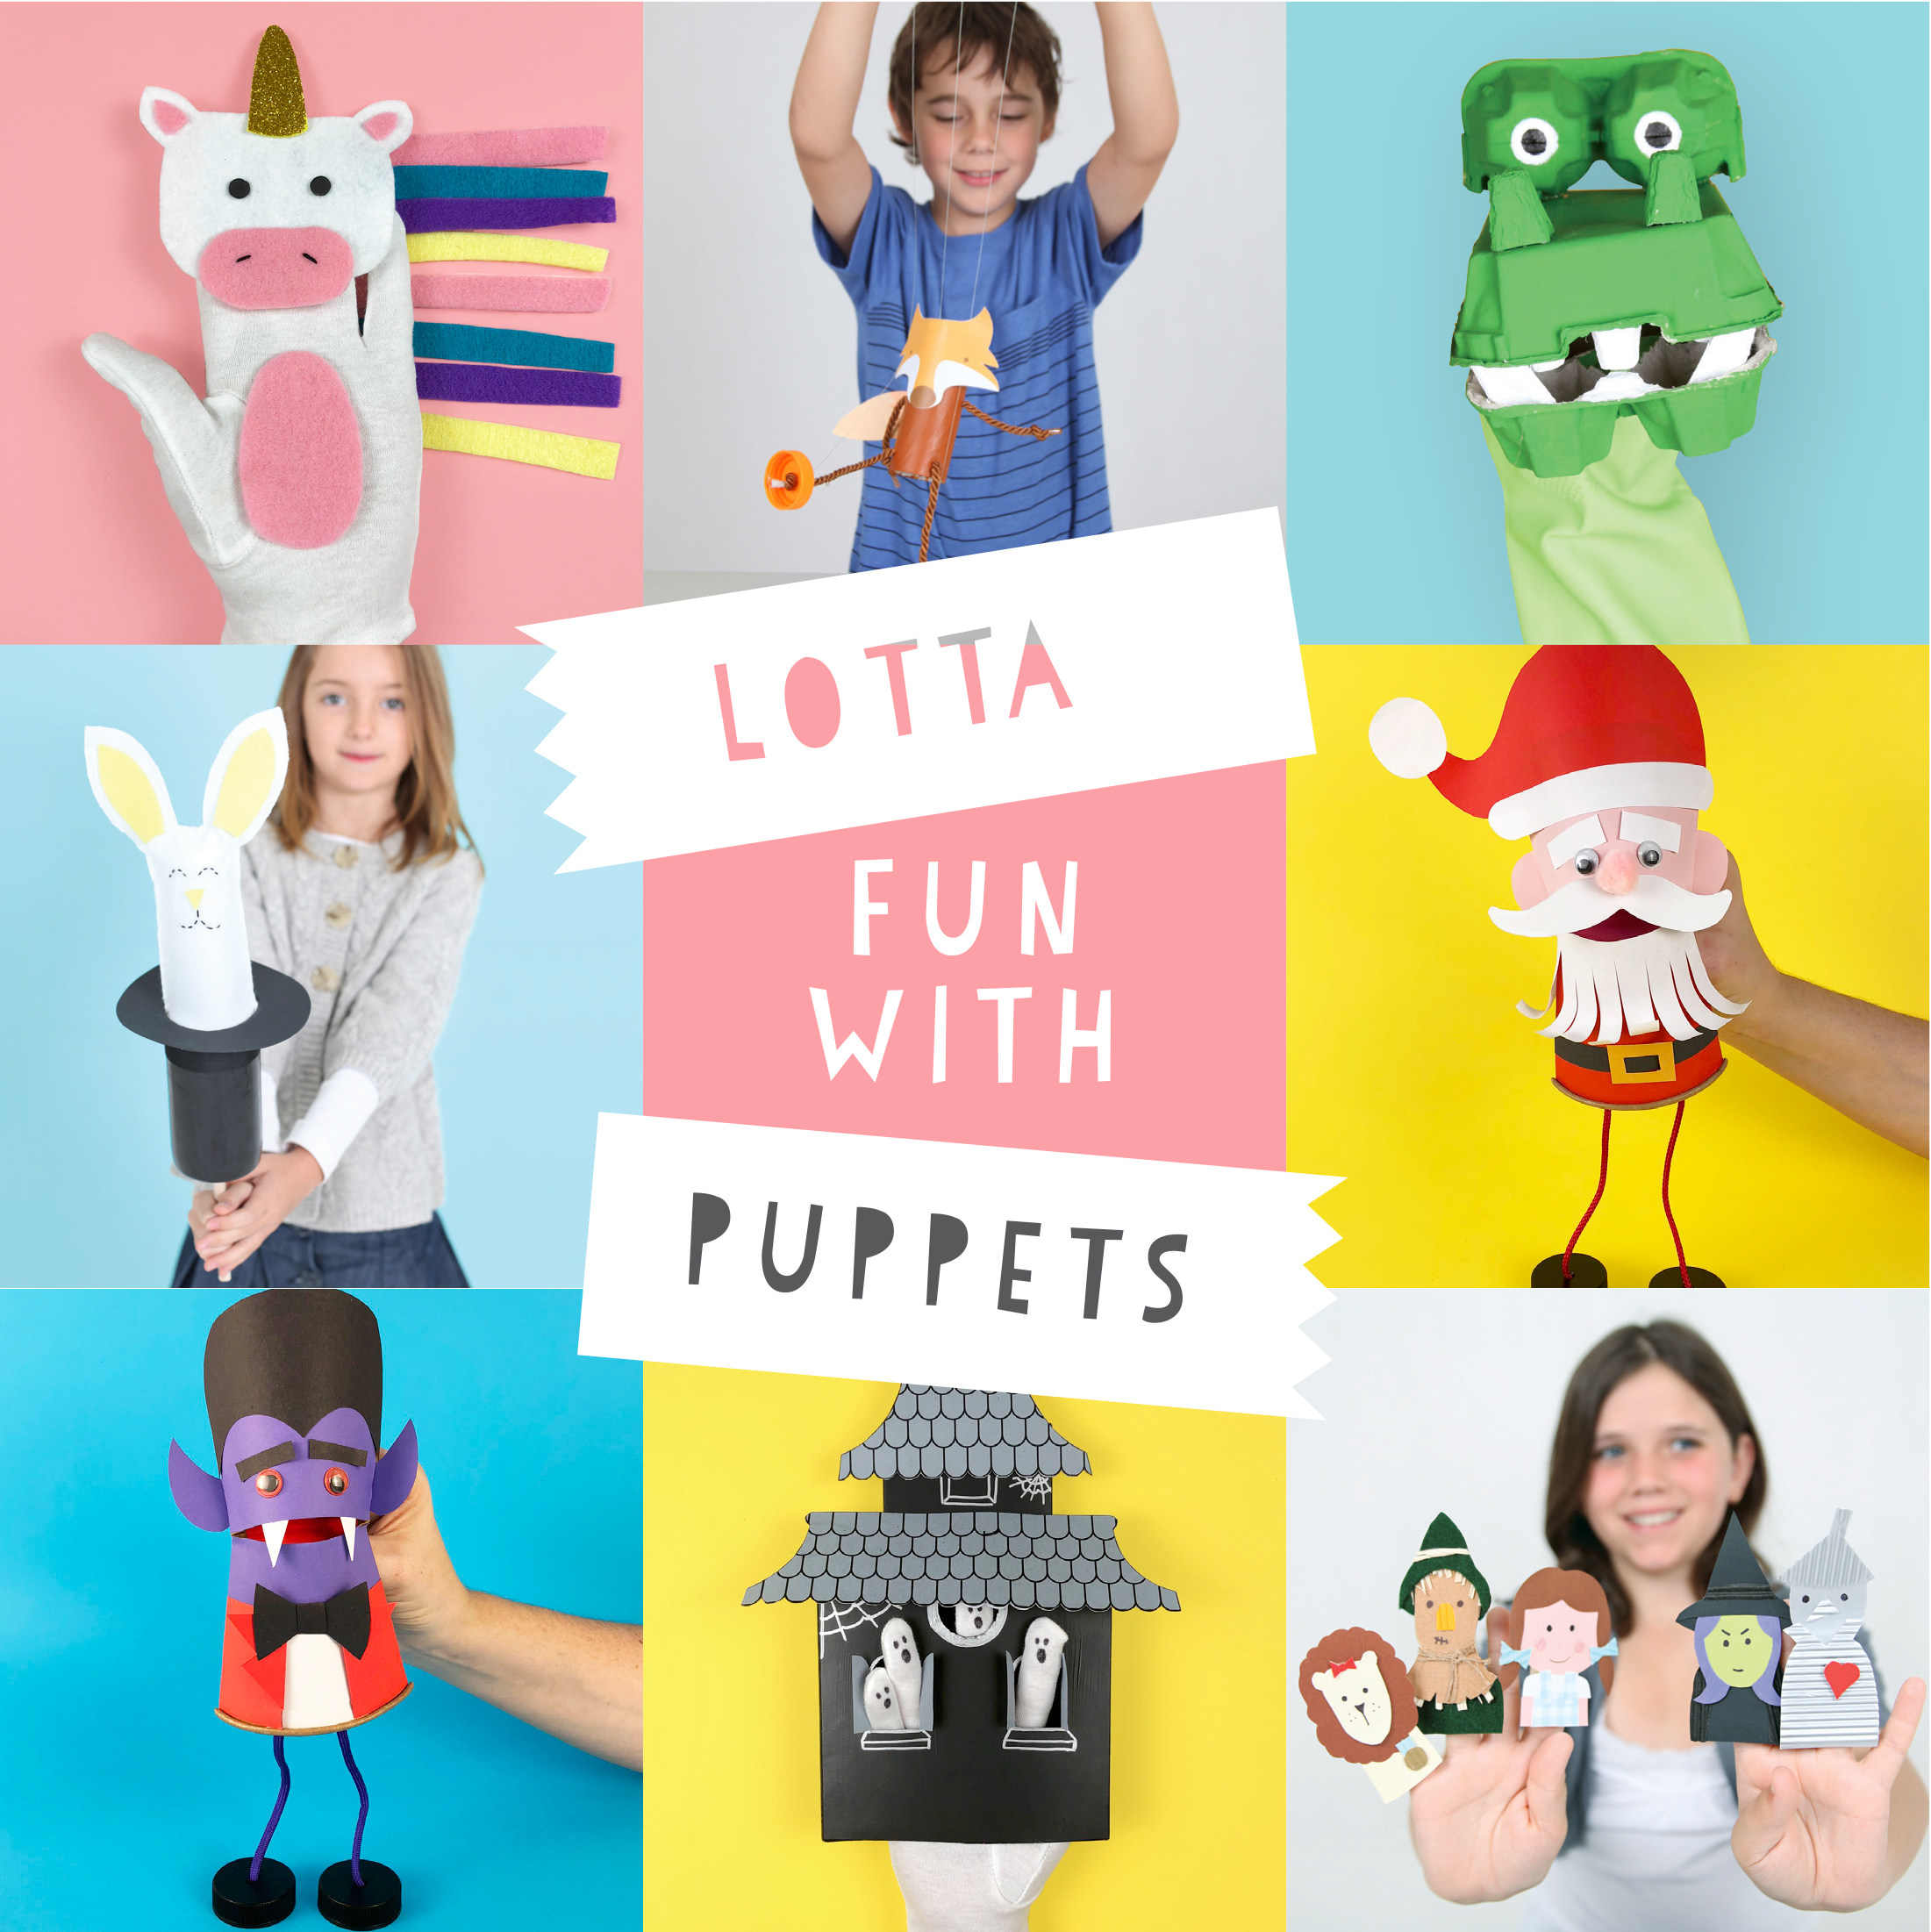 Lotta fun with puppets ebook for kids